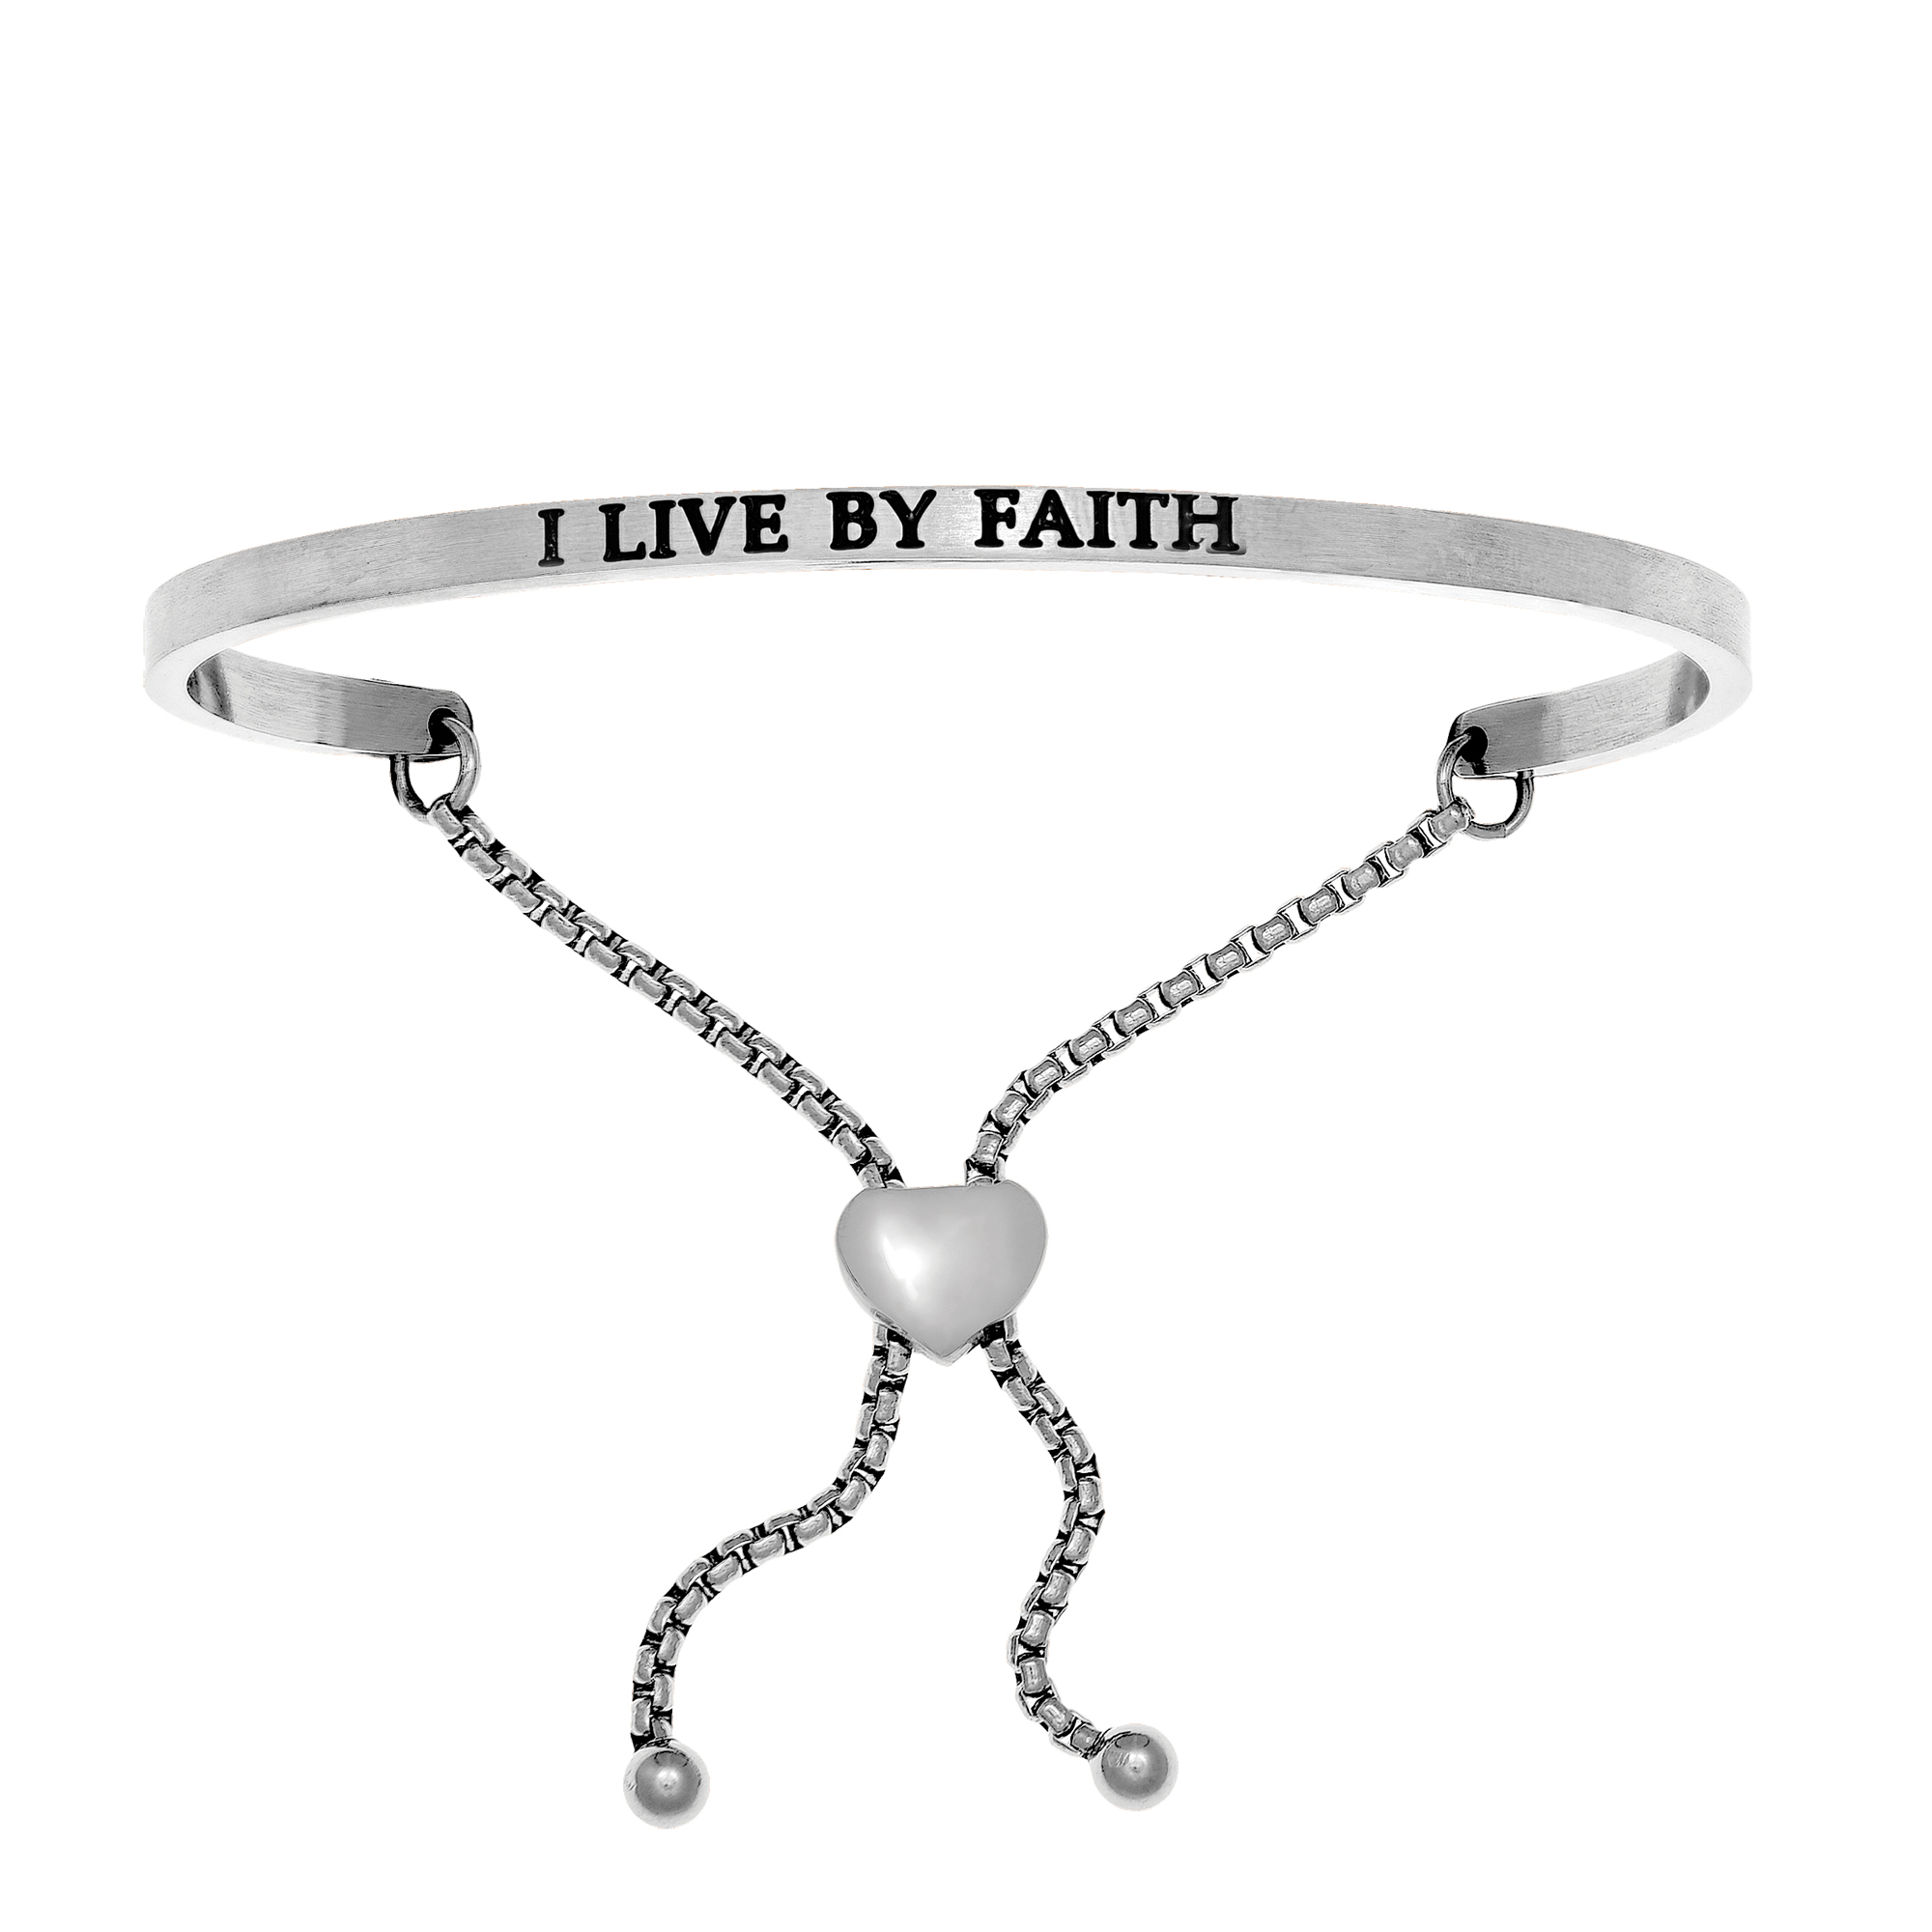 Intuitions Stainless Steel I LIVE BY FAITH Diamond Accent Adjustable Bracelet Each of these bracelets carries a personal message of inspiration, spirituality or just plain fun. Meant to be worn alone or stacked together for a smart, contemporary look, they're a great self-purchase or as a gift for family or friends. Intuitions are made of stainless steel and come in two styles standard cuff or friendship and fit practically any wrist. Intuitions Jewelry makes the difference in your daily life by designing and creating bracelets and bangles with motivational quotes to inspire you and your loved ones. Giving back $.25 of each bracelet to BABY2BABY